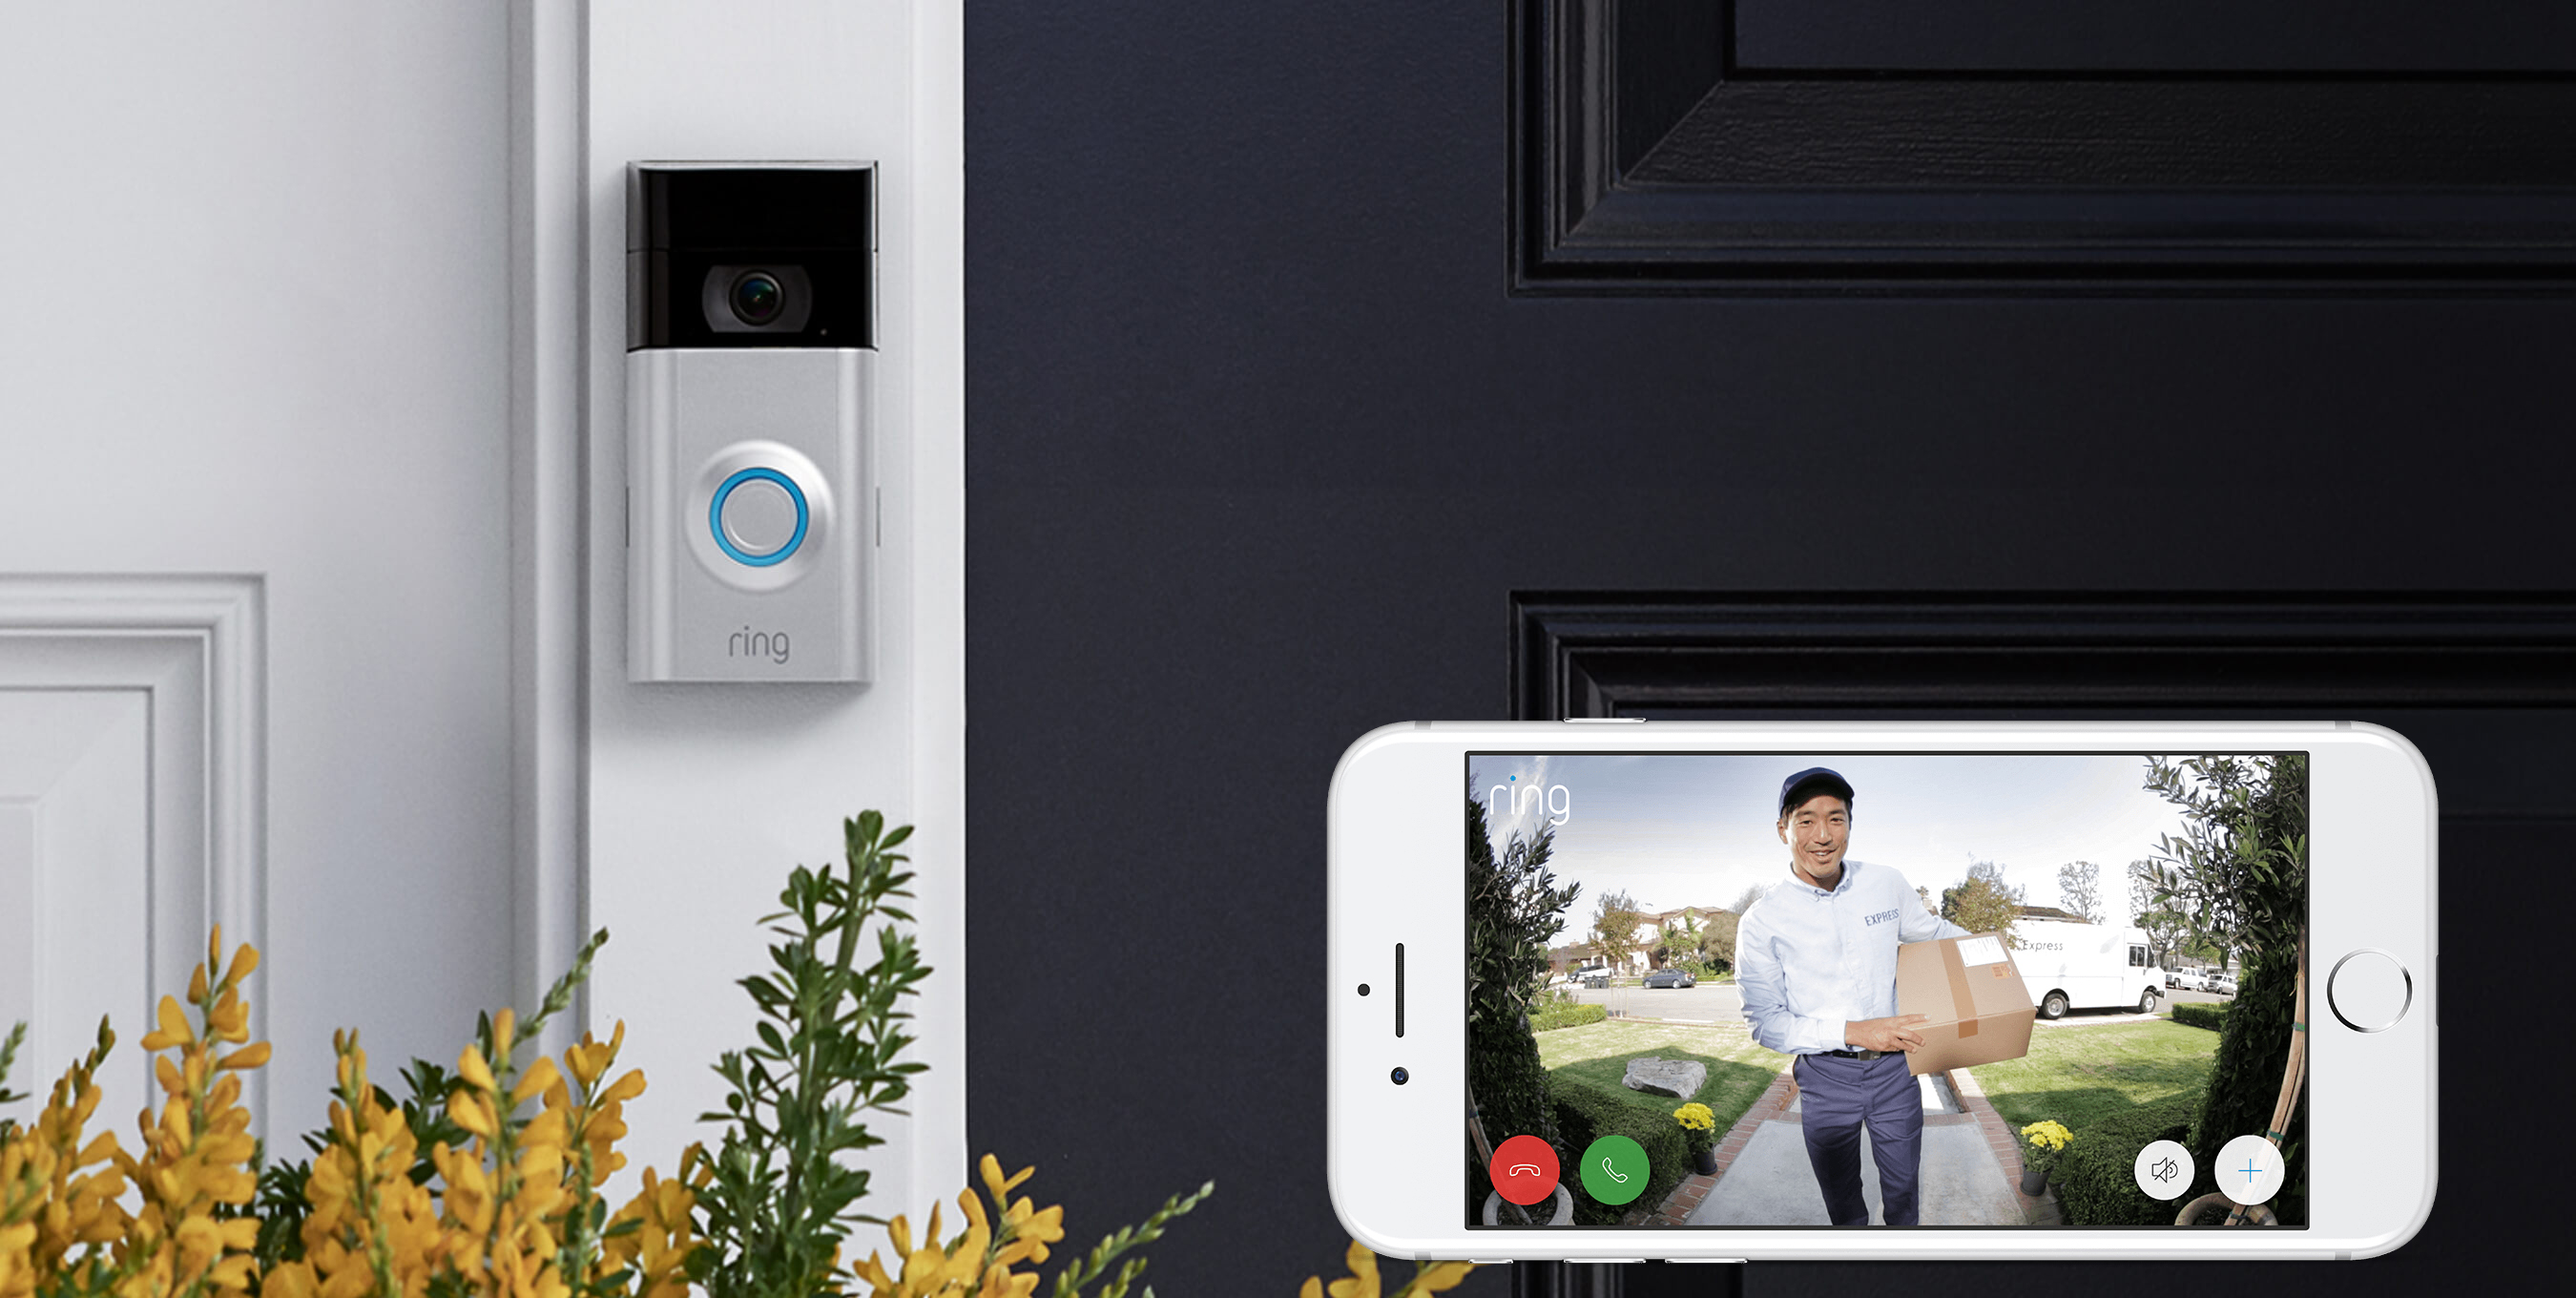 The Next Generation of Video Doorbells